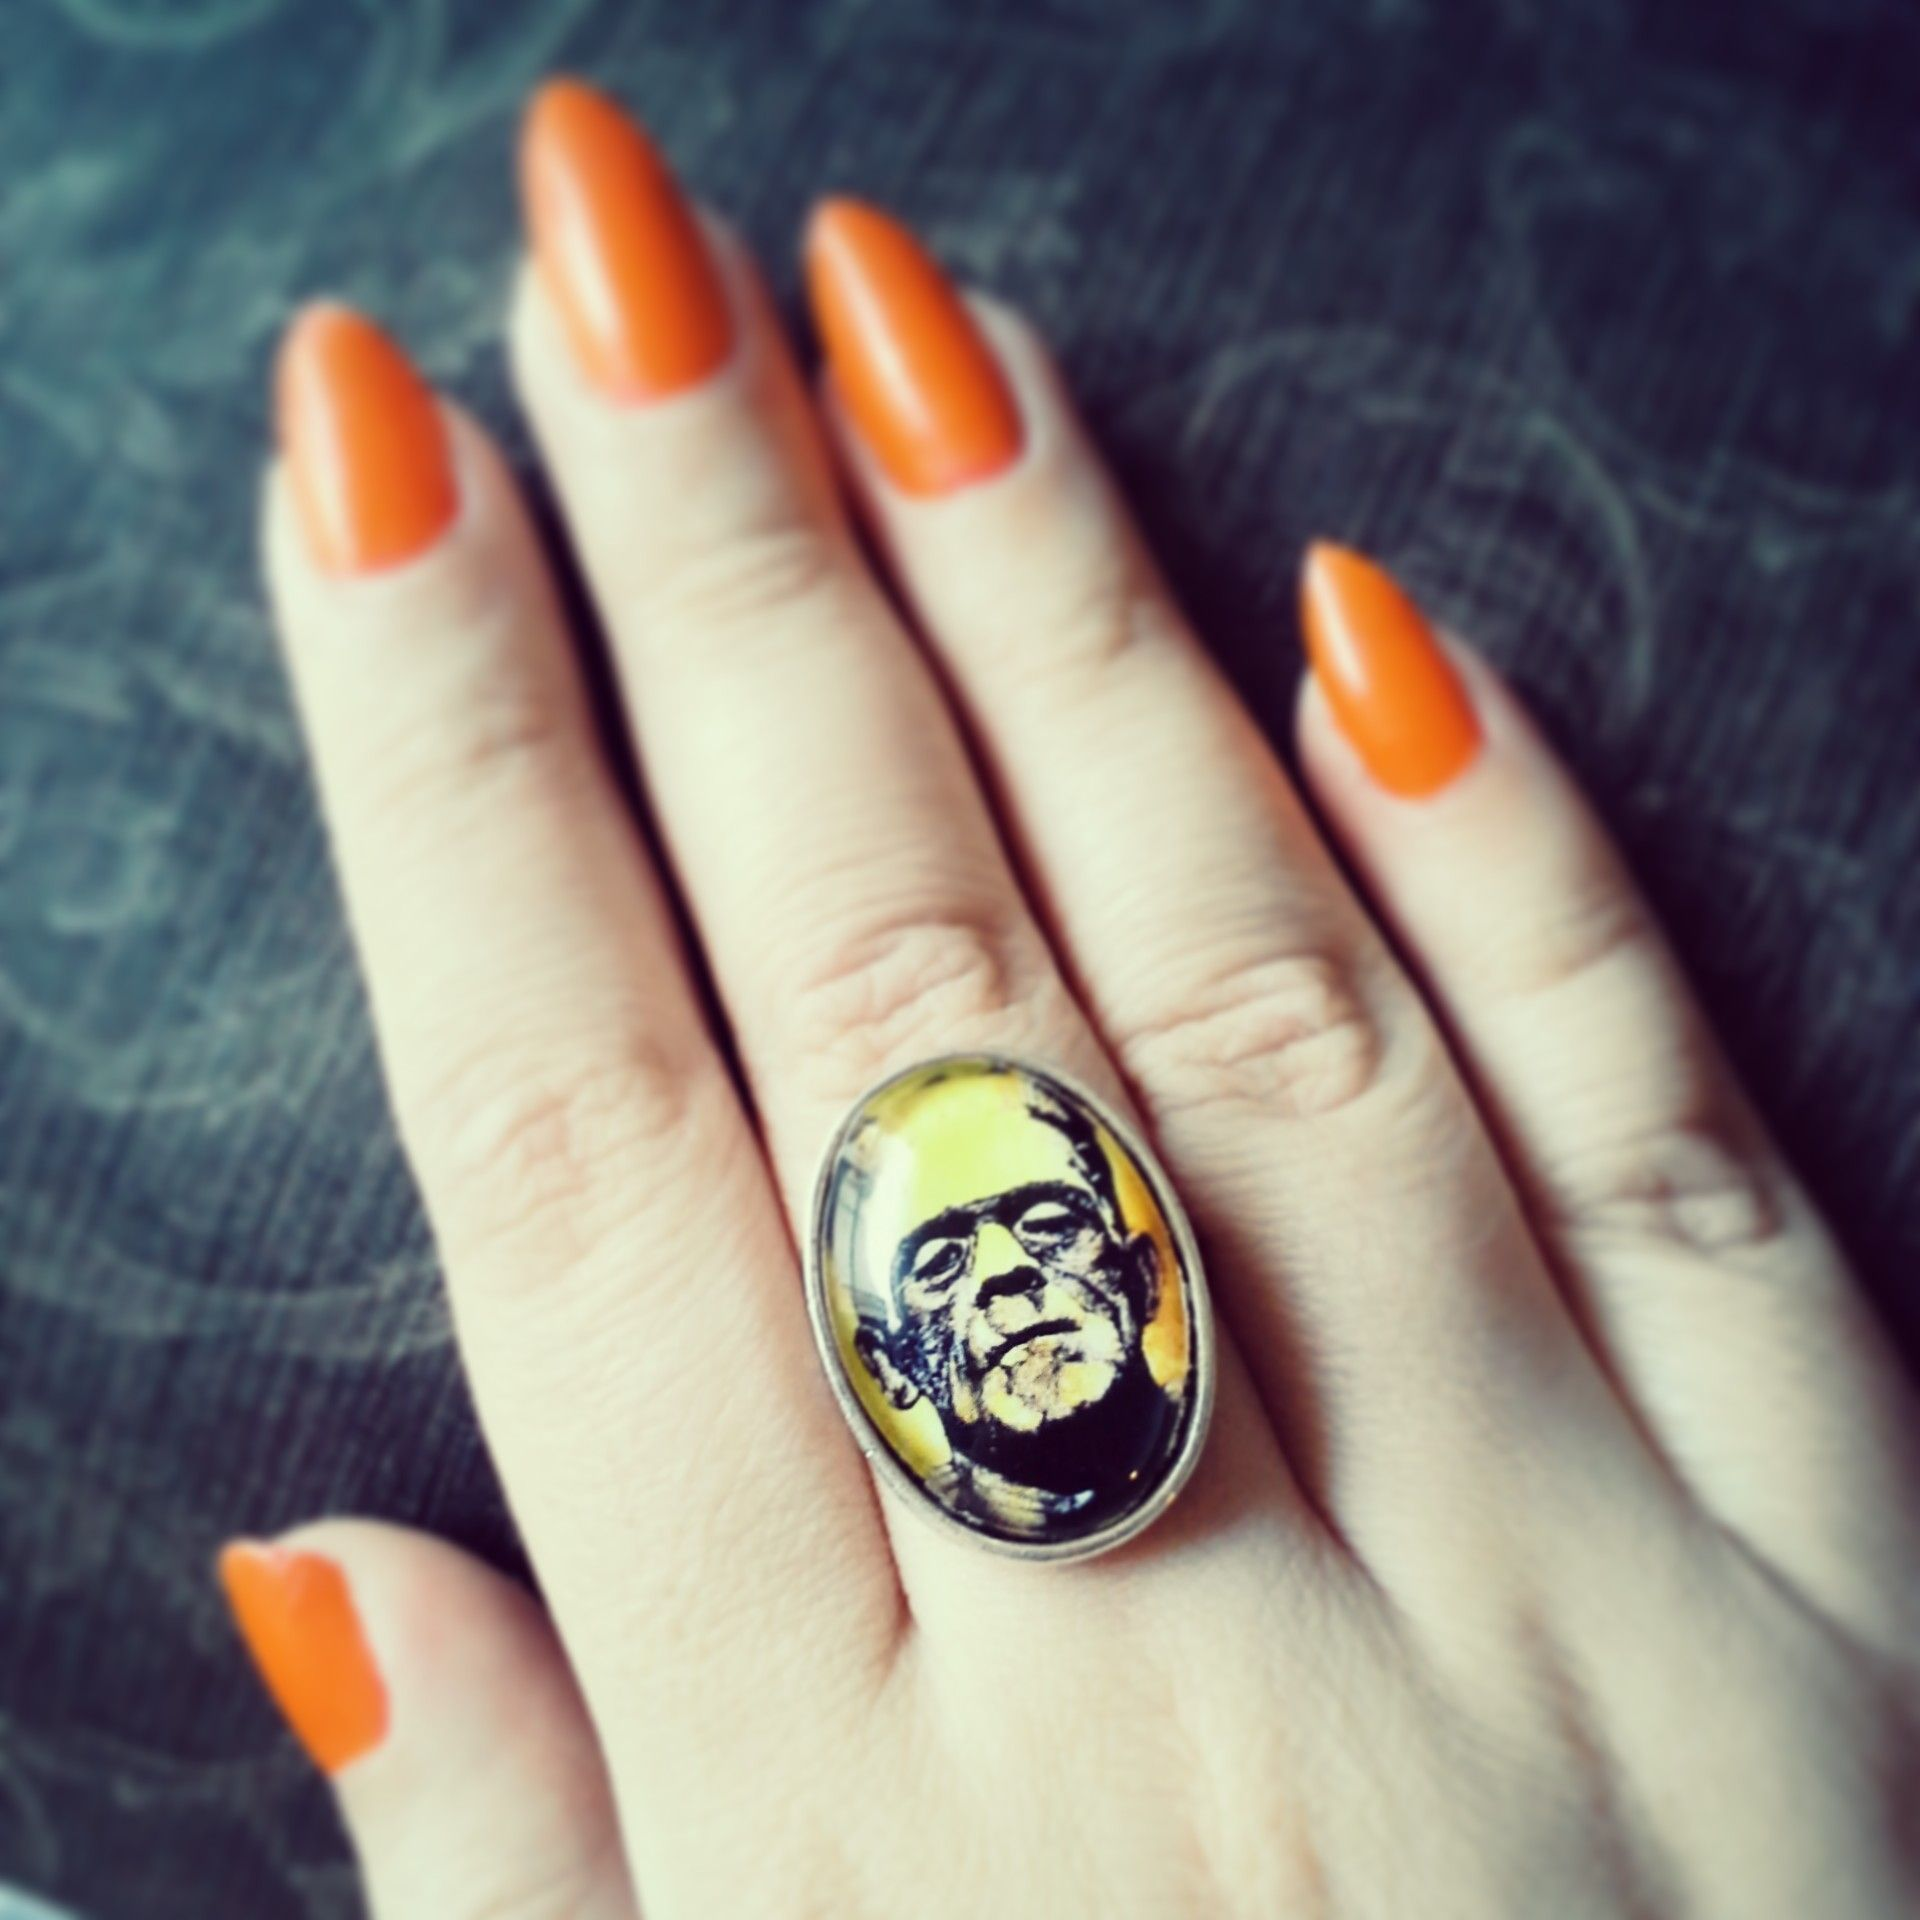 This ring features the artwork of Chuck Hodi. Ring is made with a 18x25mm glass cabochon and sits in a silver plated brass ring.  To view more of Chuck Hodi's art visit https://www.etsy.com/shop/chuckhodi  All images used with permission. ©Chuck Hodi